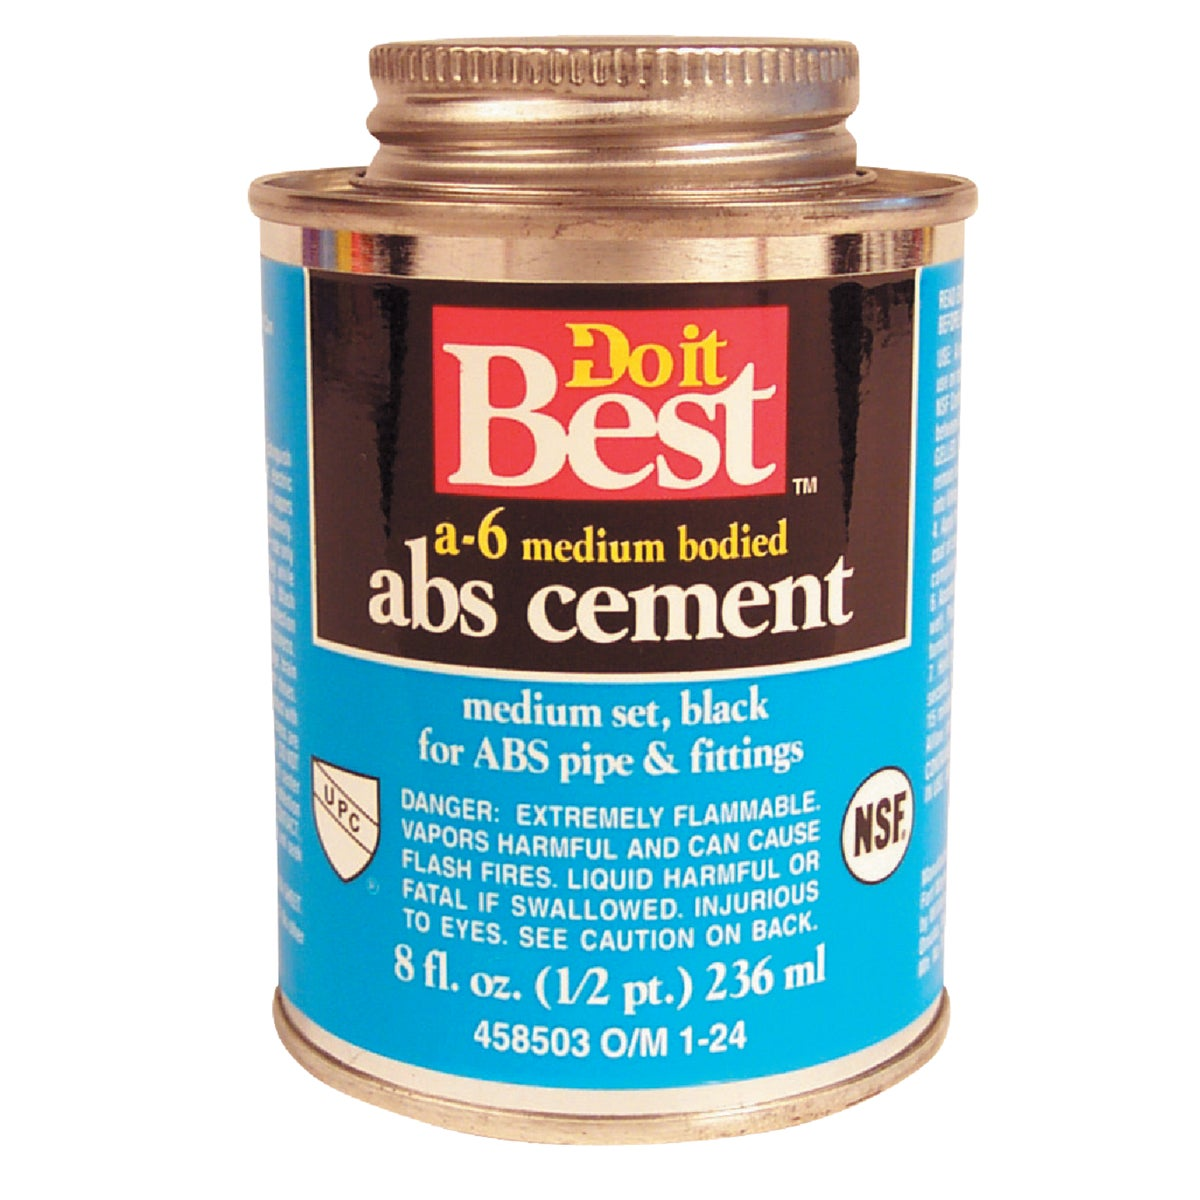 1/2PINT ABS CEMENT - 018512 by Wm H Harvey Co